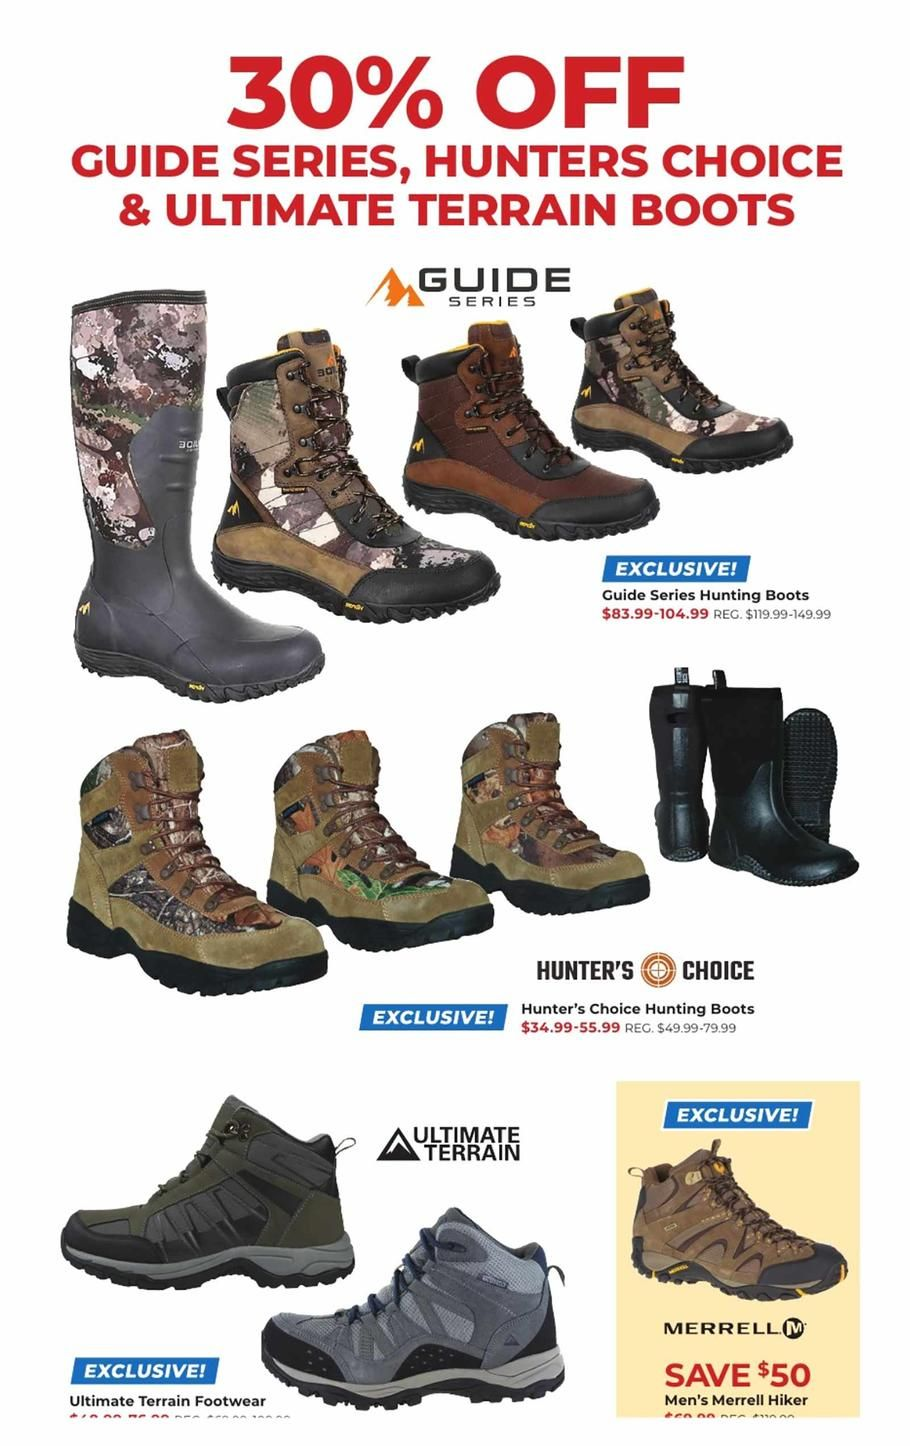 Black Friday 12222 Hunting Gear Sales and Specials